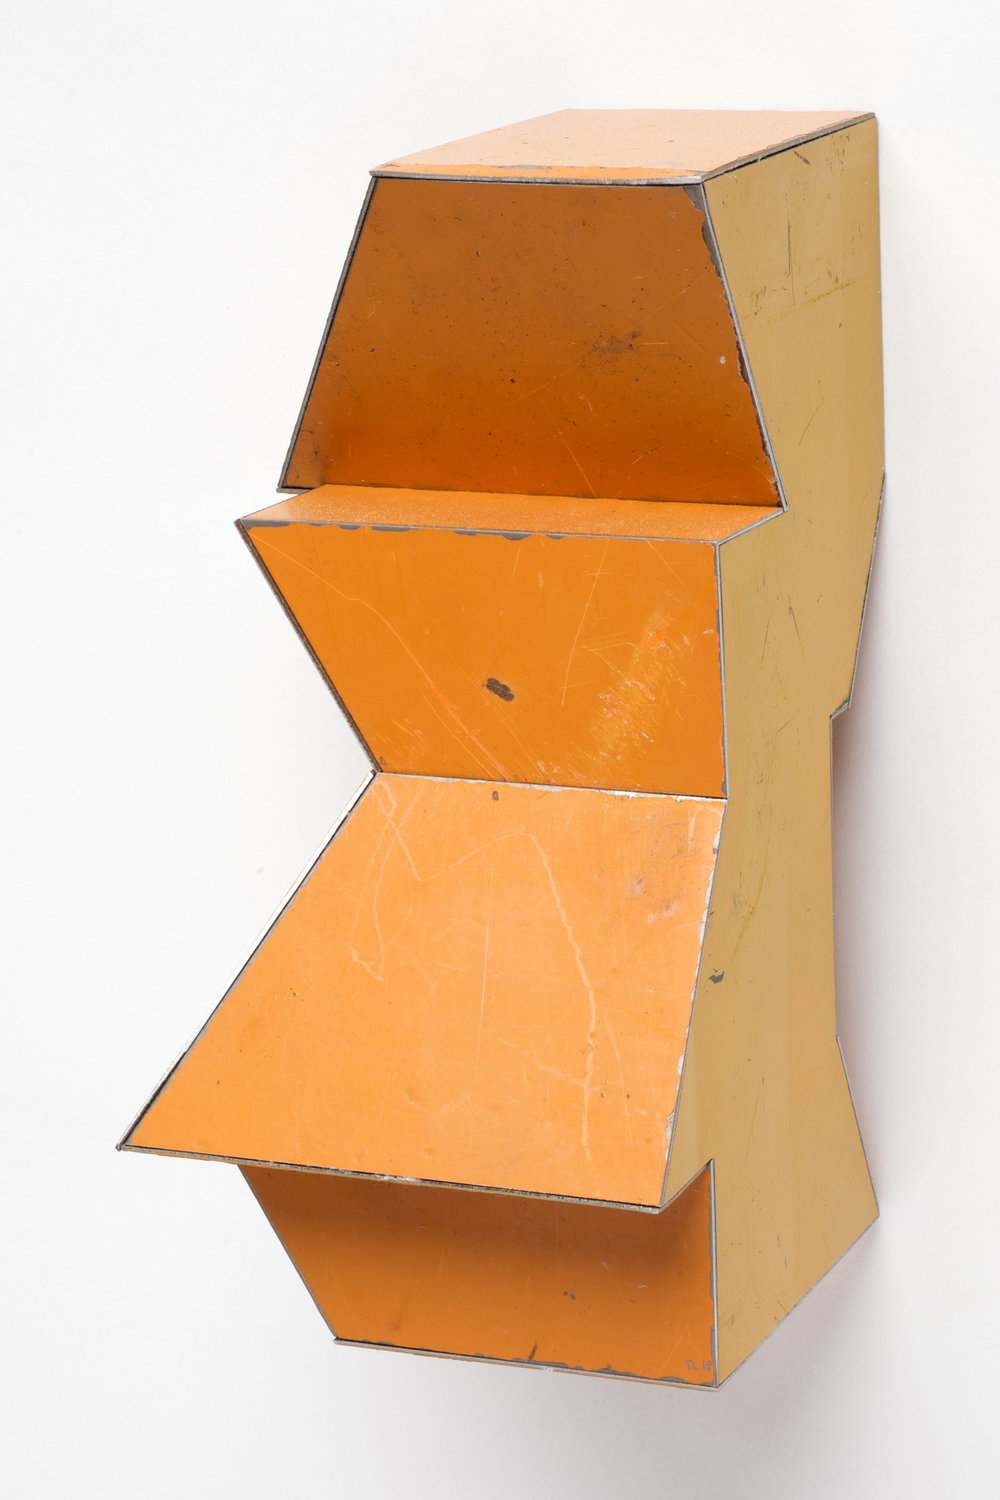 Single Copy, 7.5 x 3.5 x 4 inches / 19 x 8.9 x 10.2 cm, salvage steel, marine-grade plywood, silicone, vulcanized rubber, hardware, 2018